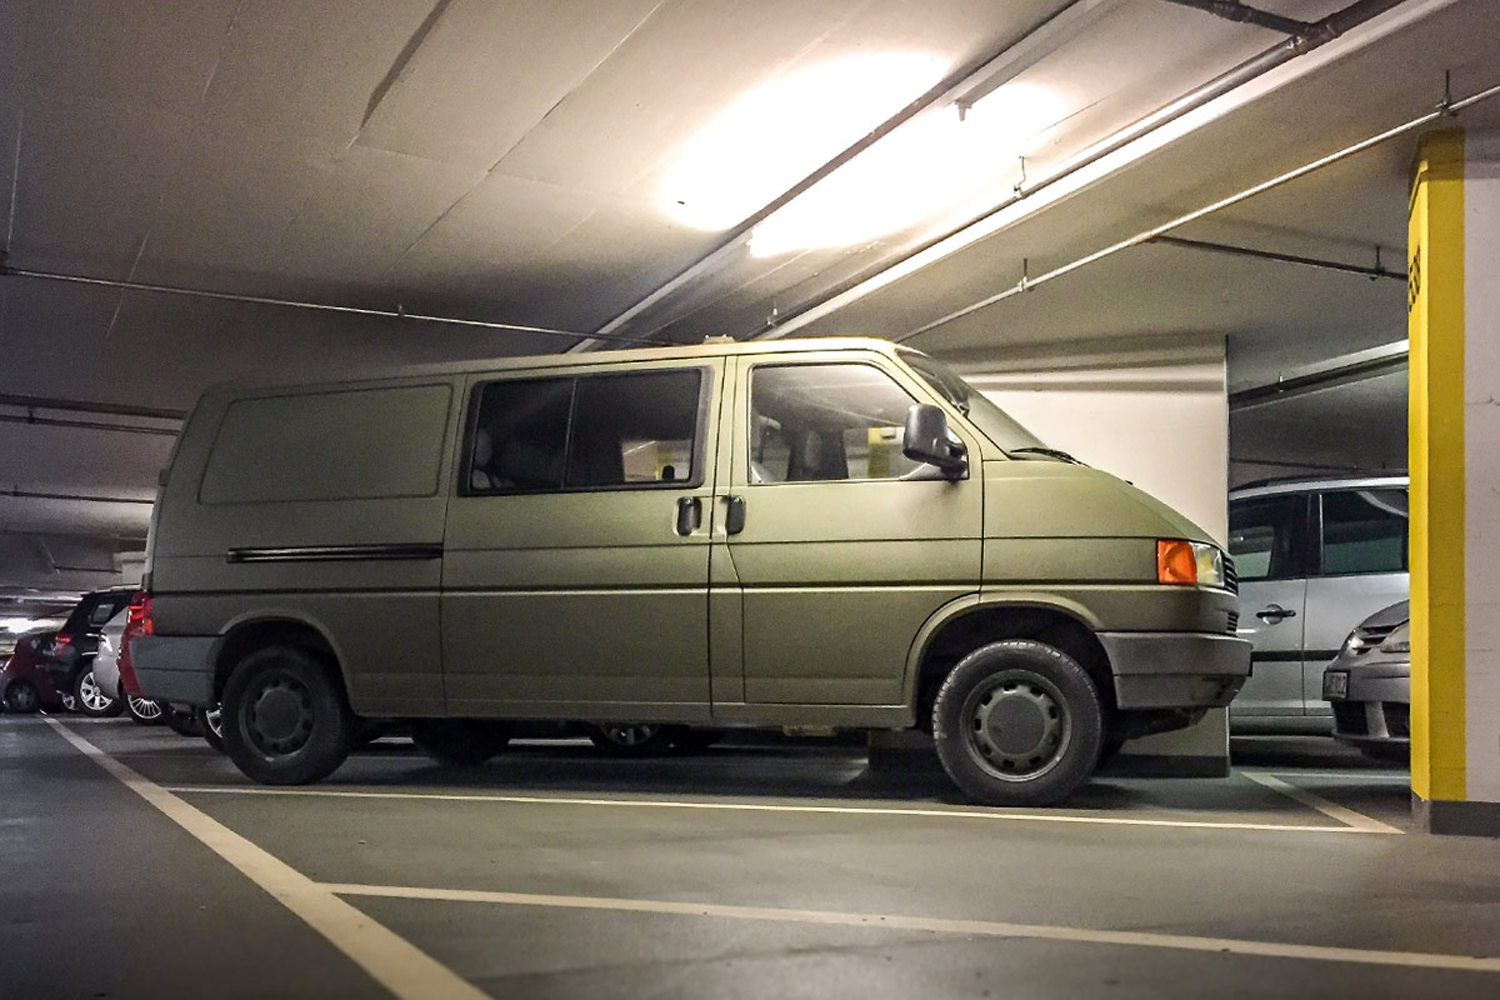 LIFE-for-FIVE-T4-Syncro-Der neue VW Bus in der Tiefgarage.